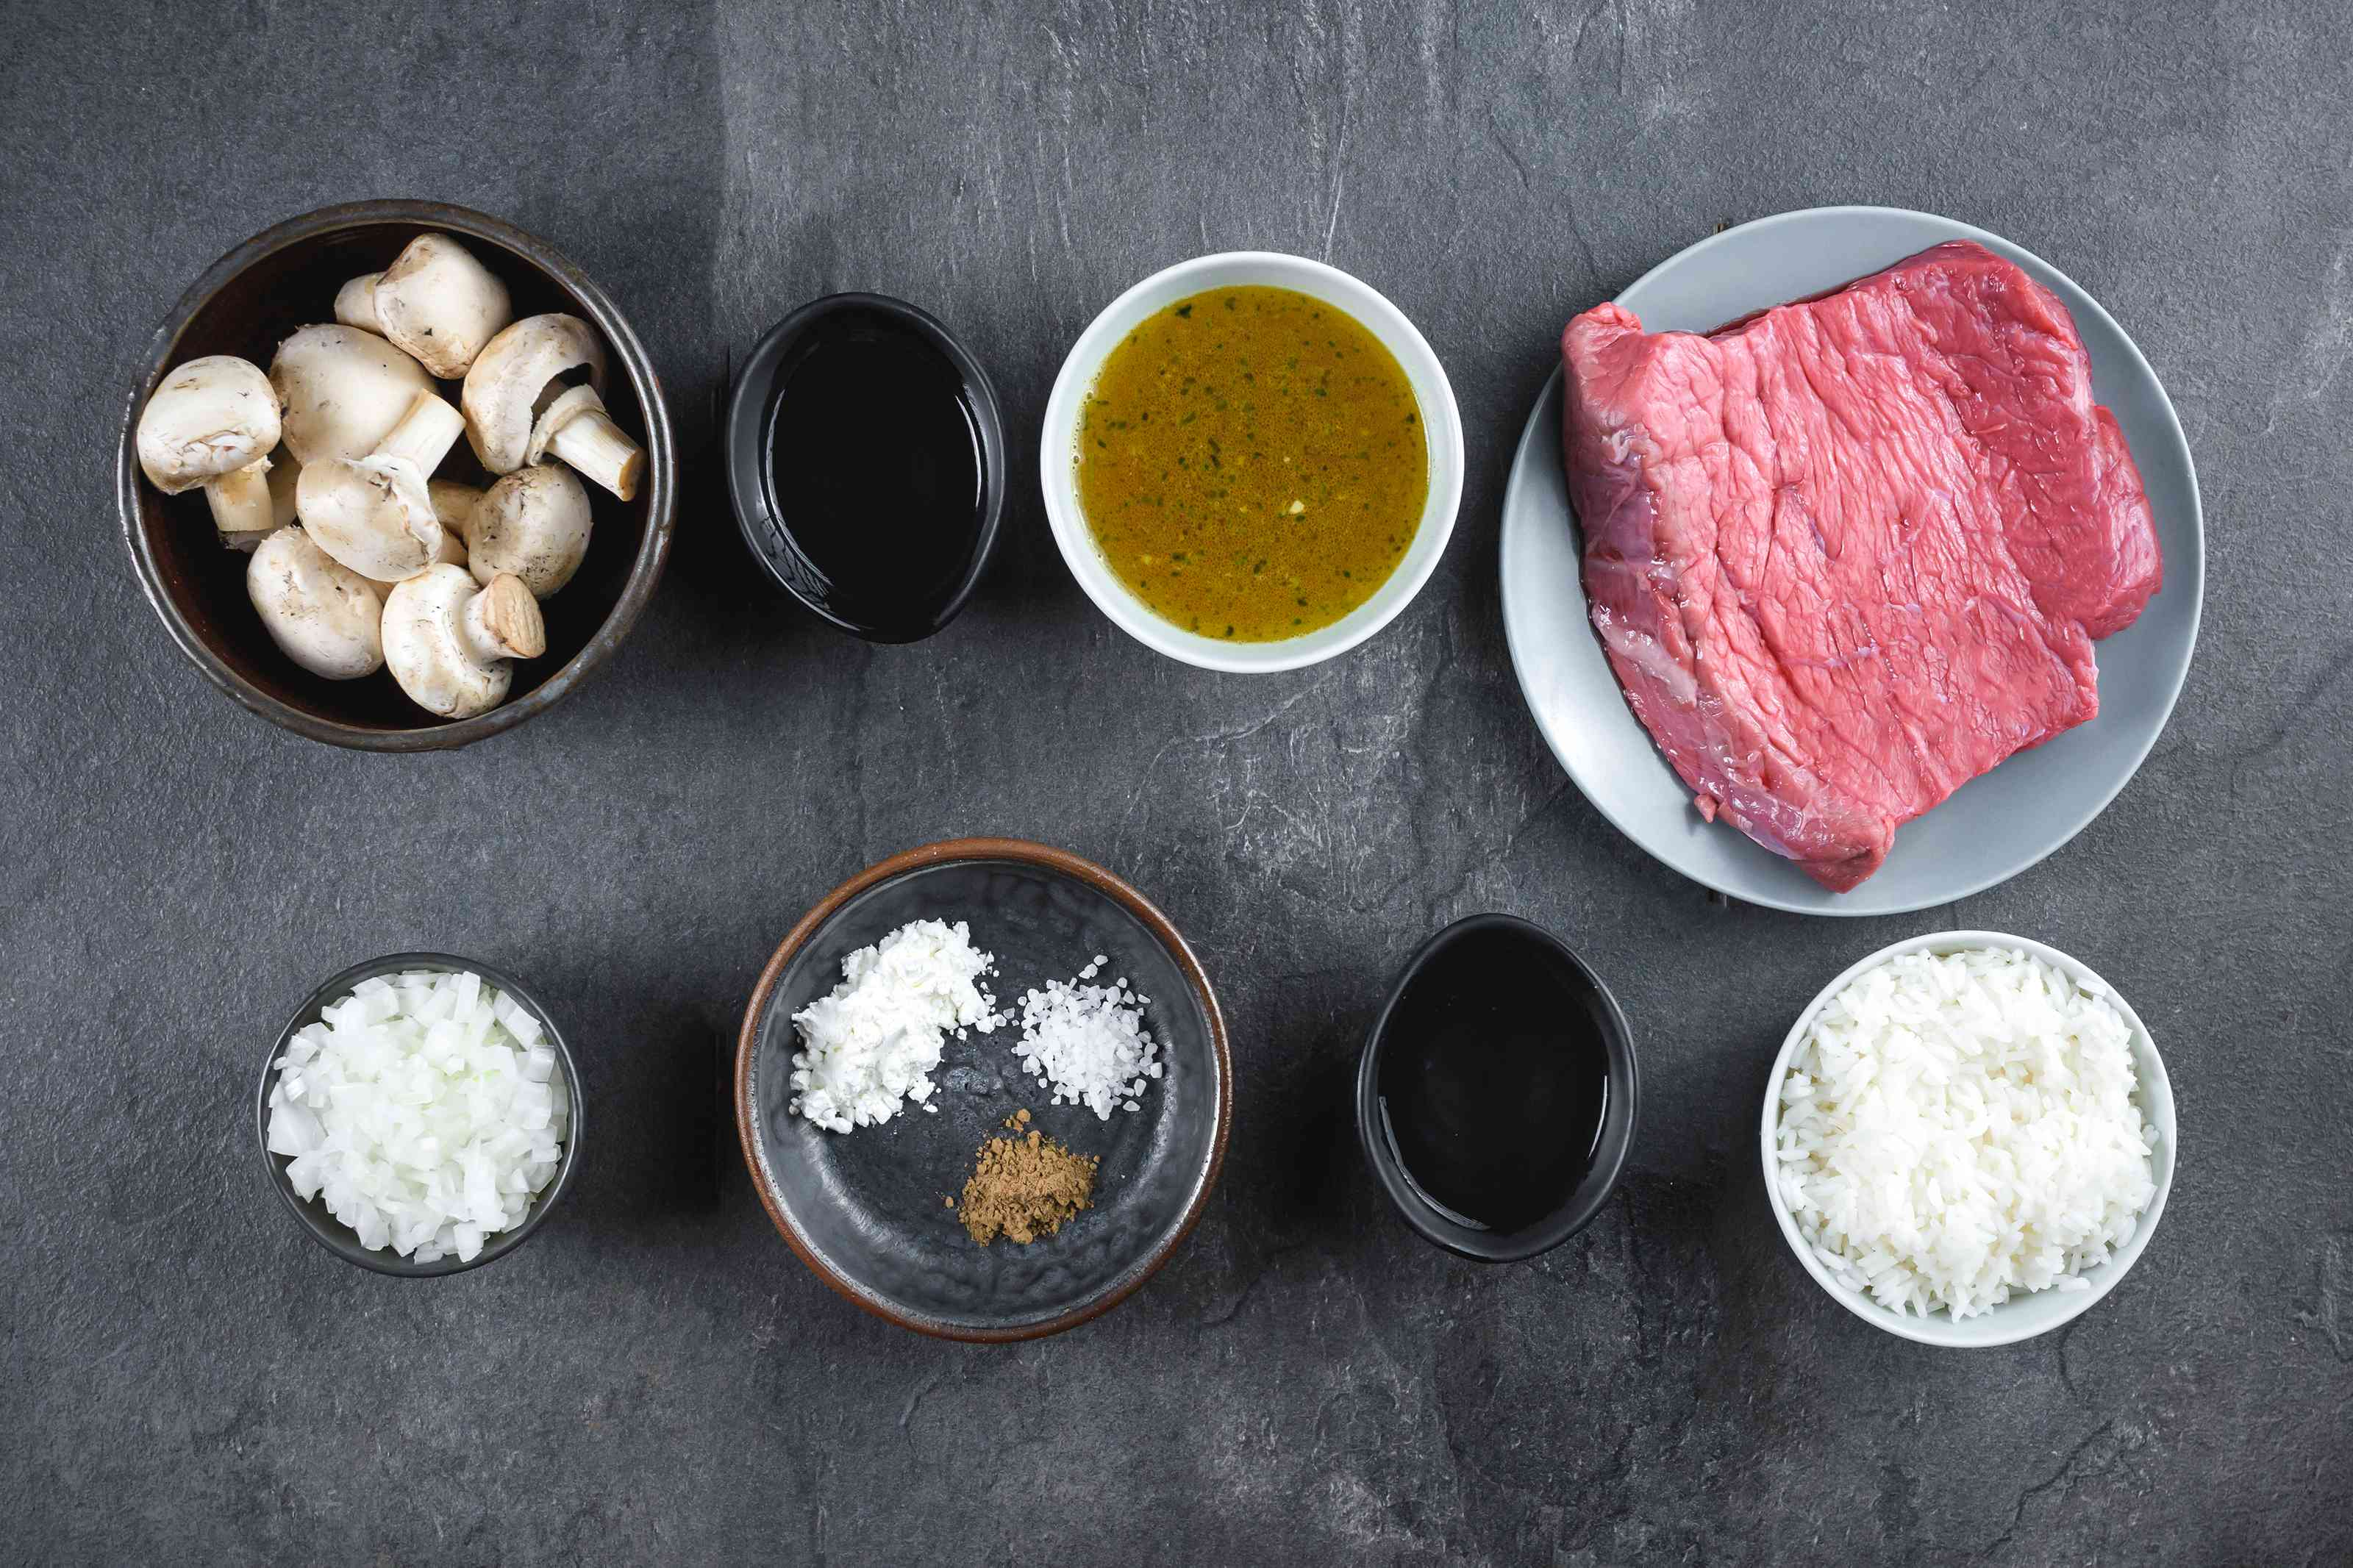 Ingredients for beef tips with rice